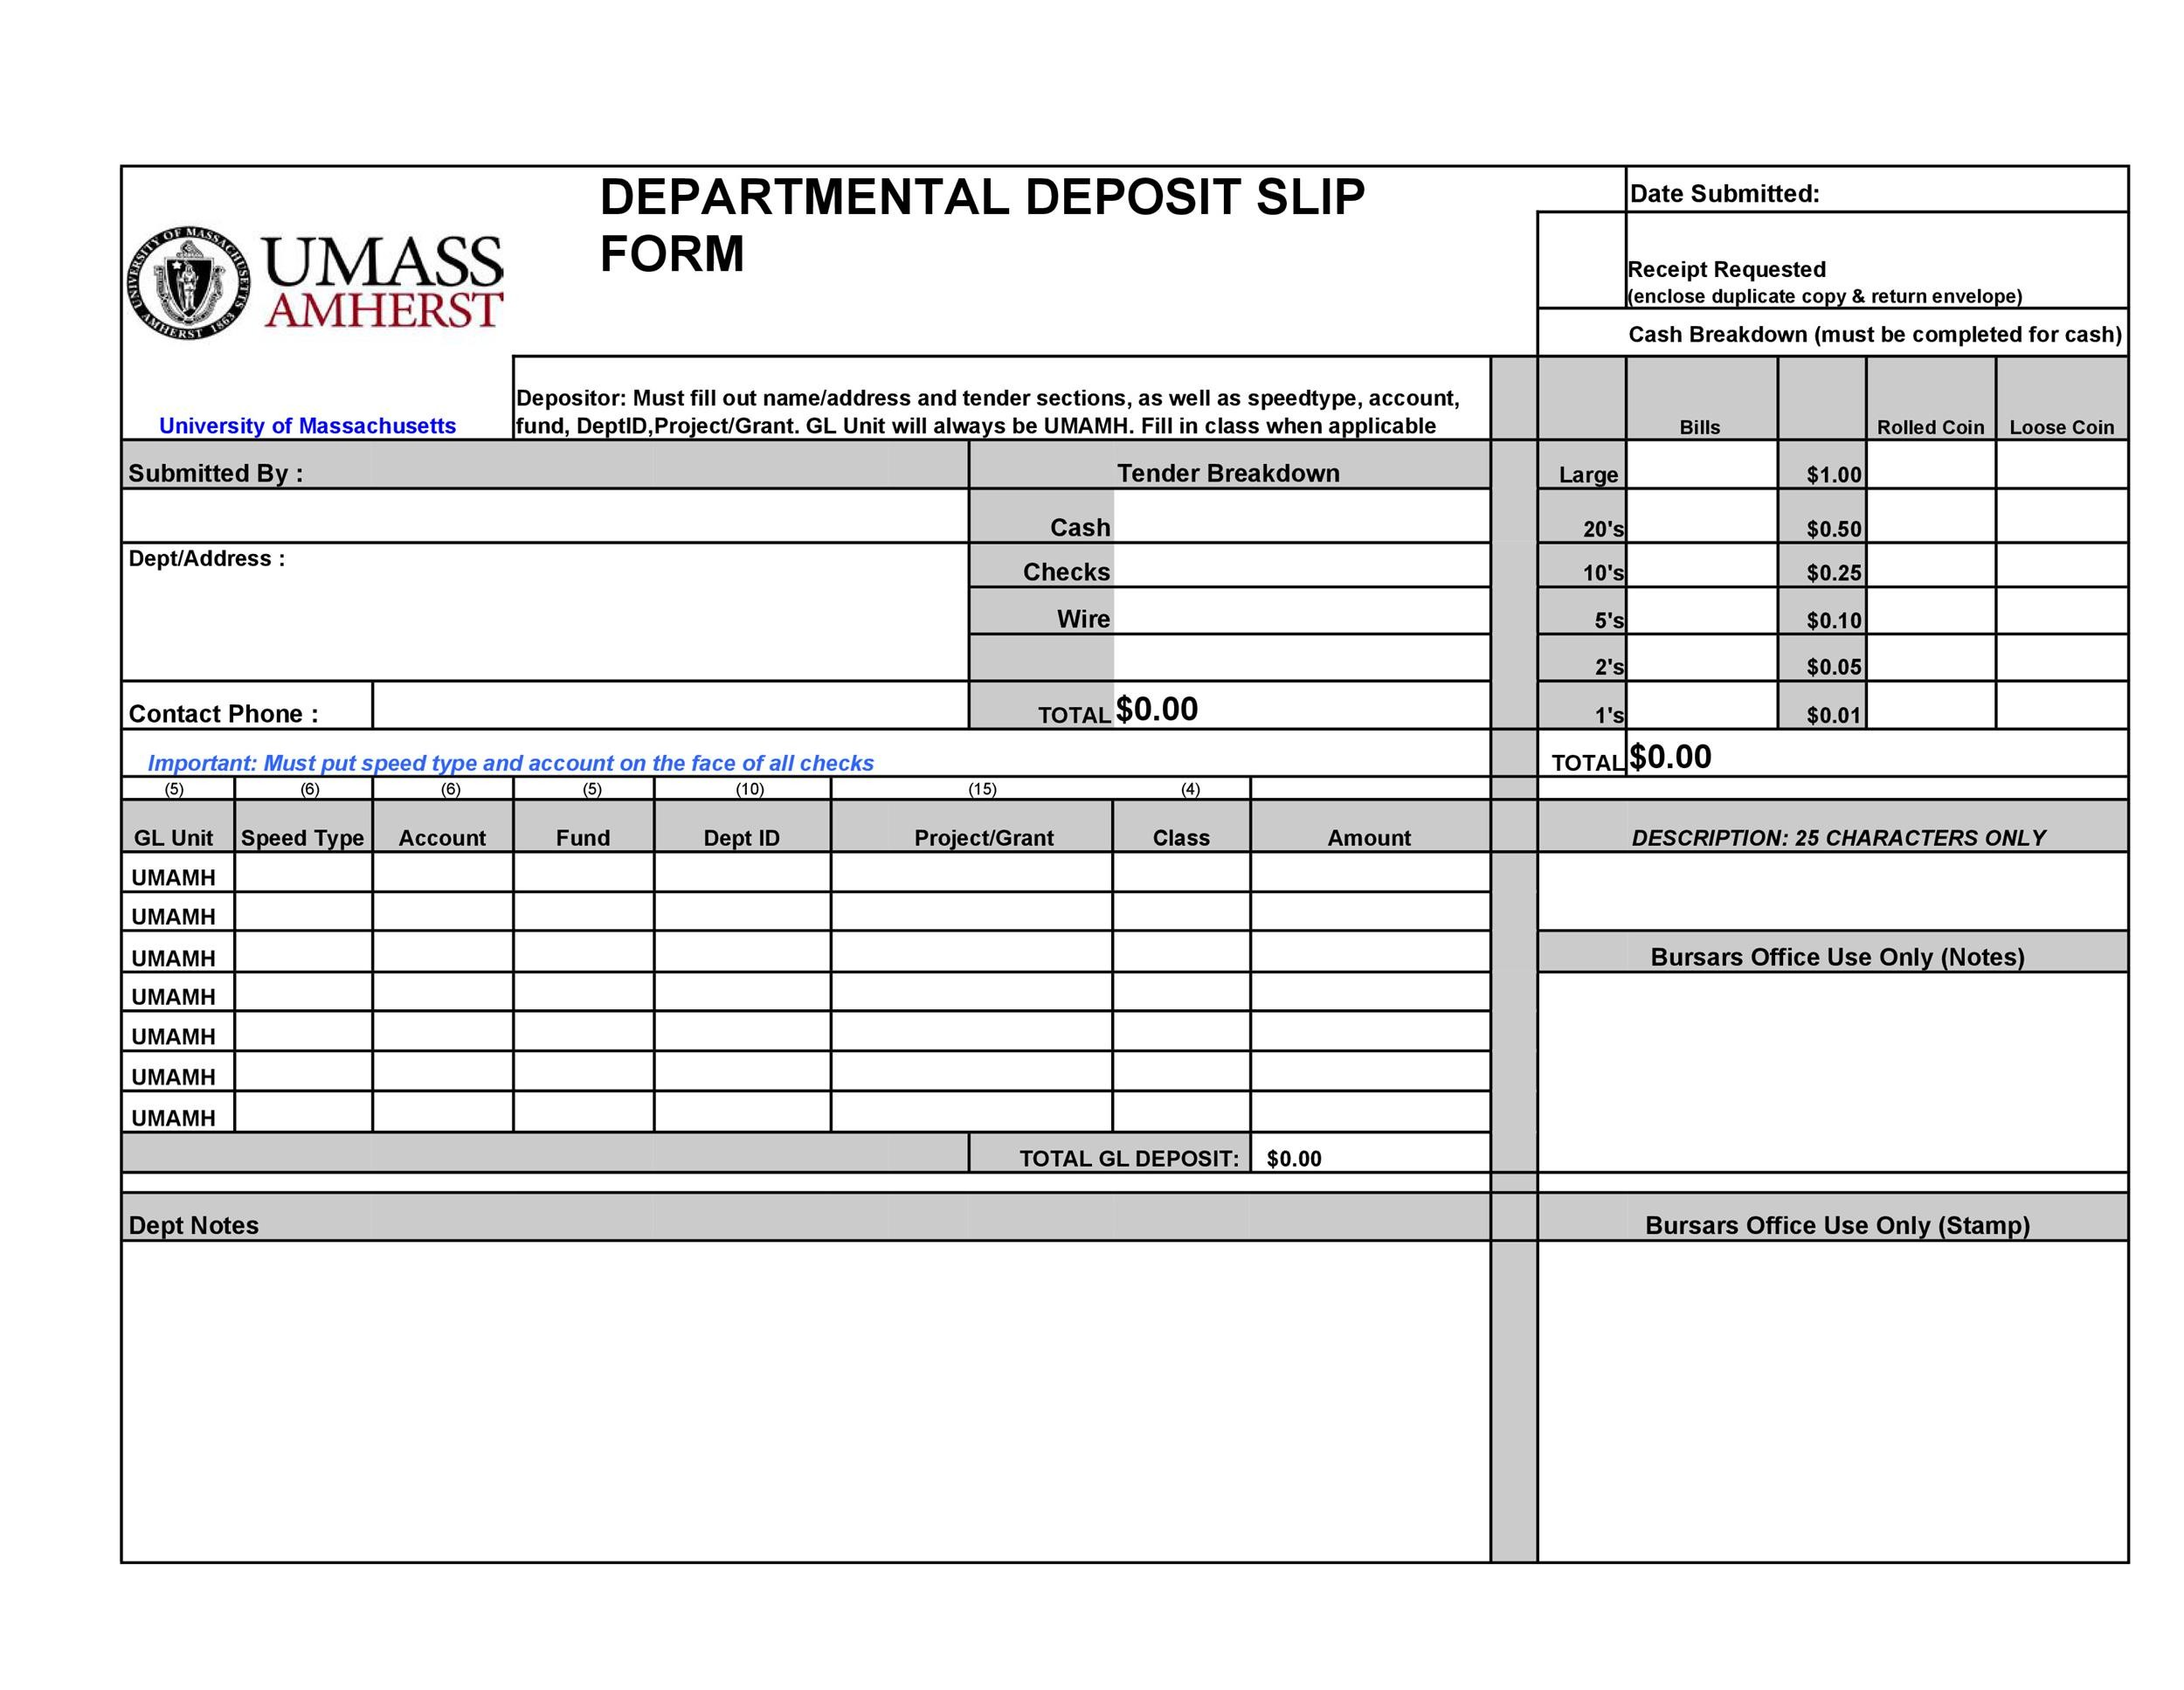 37 Bank Deposit Slip Templates & Examples ᐅ Template Lab